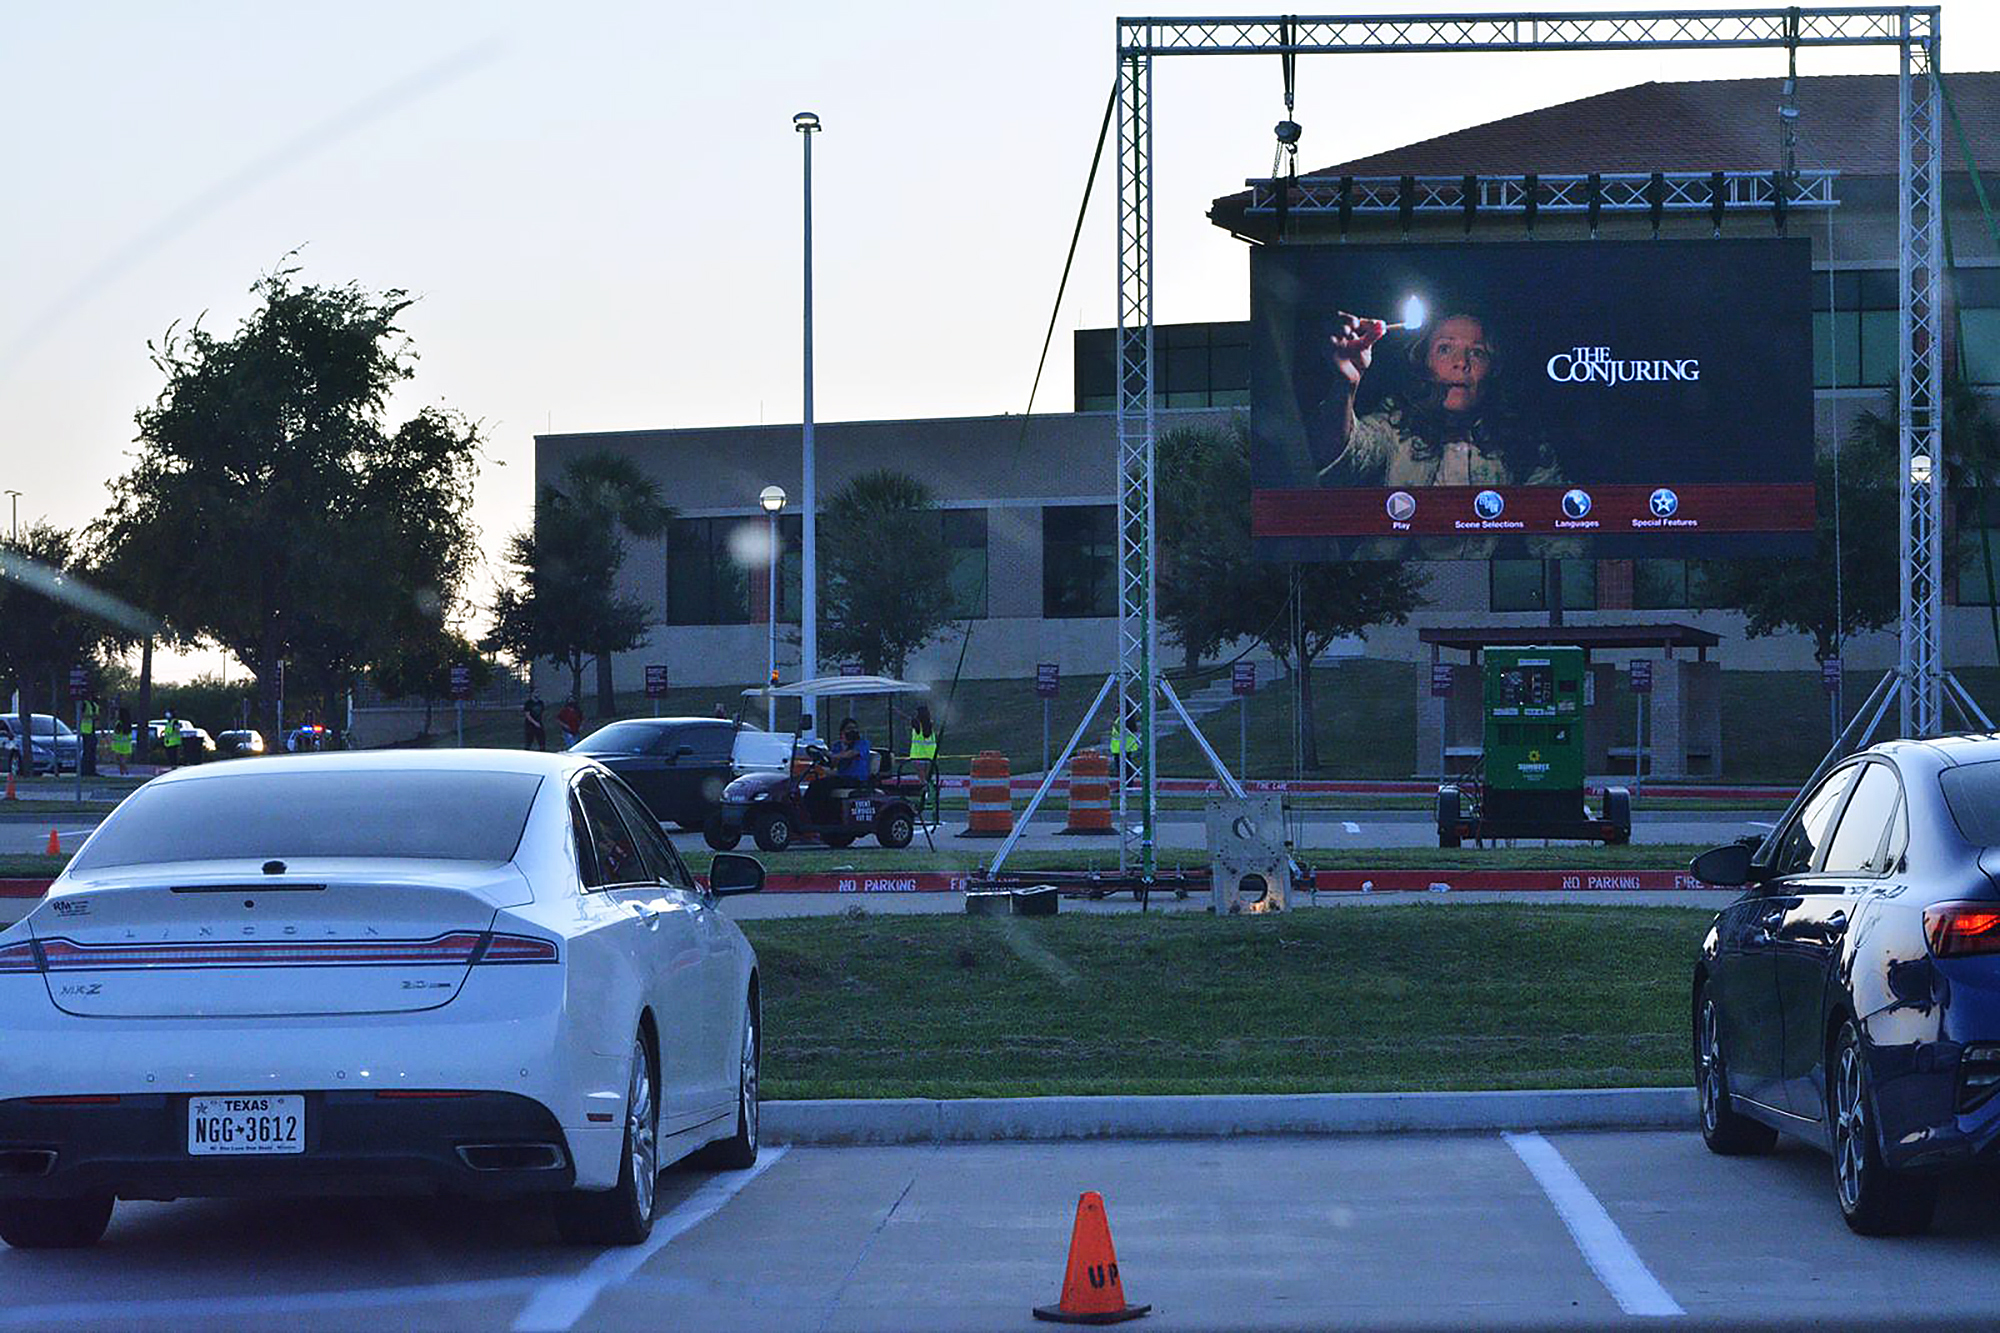 Drive-in Movie event provides entertainment, social distancing